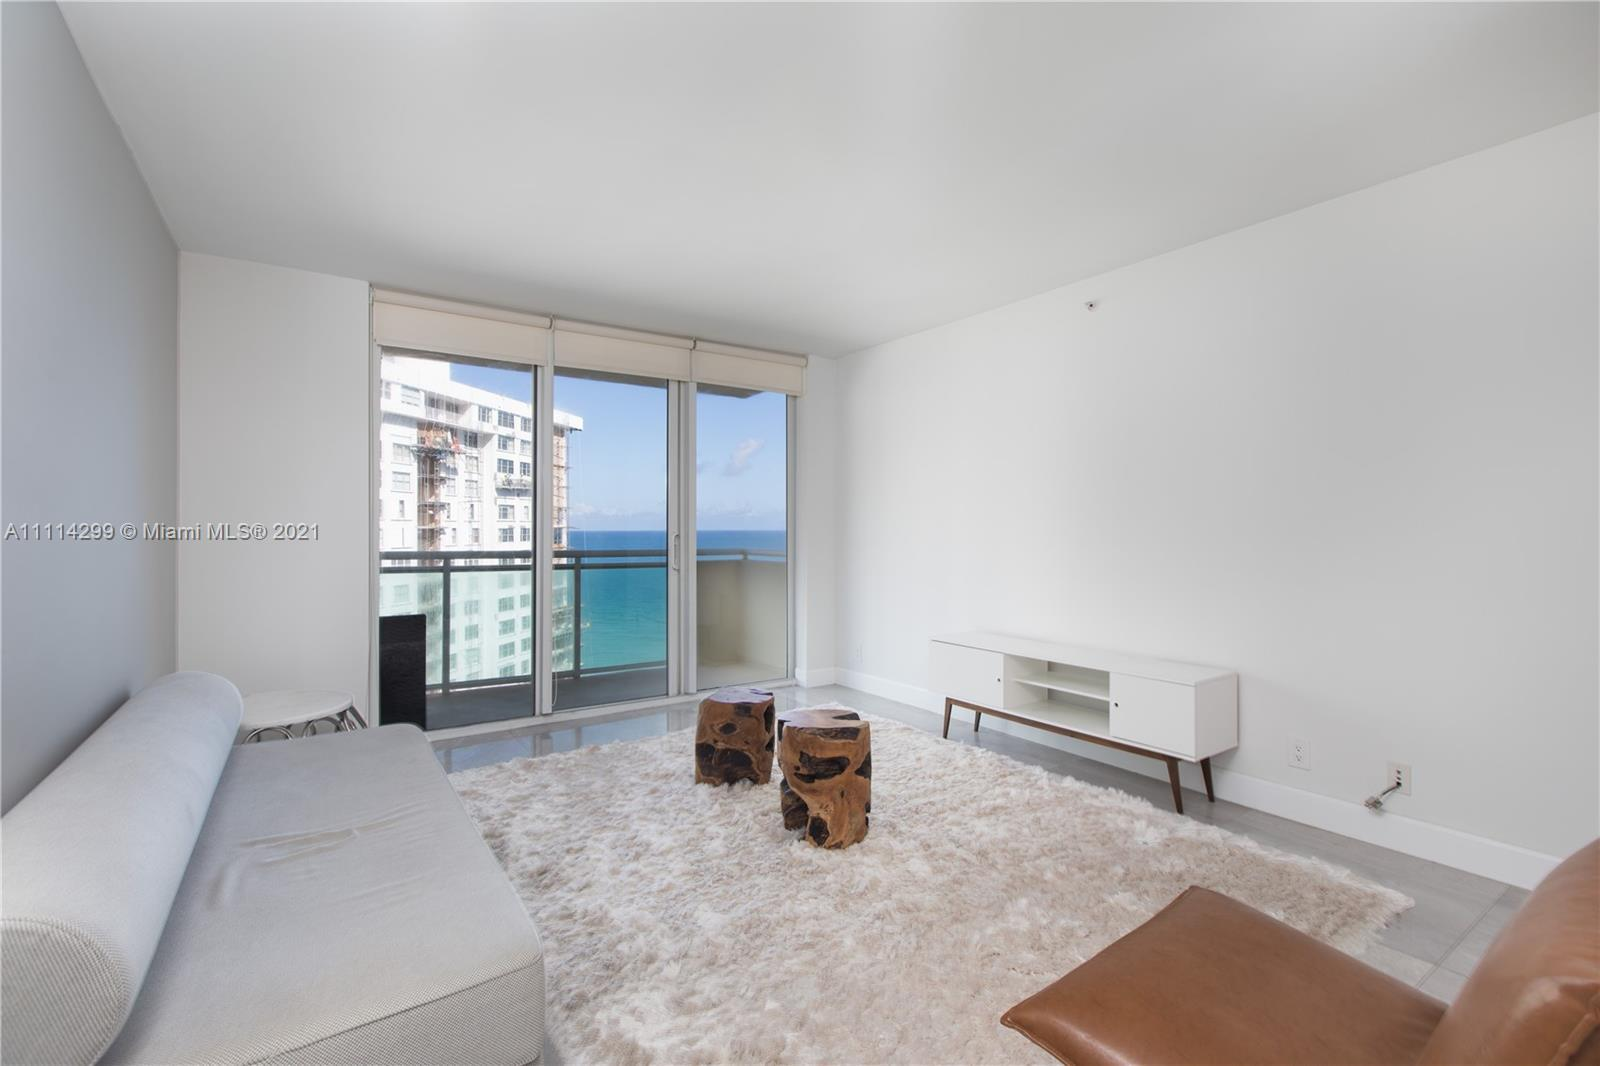 Enjoy stunning direct ocean views in this beachfront 1BR/1BA with Italian marble floors, updated bat